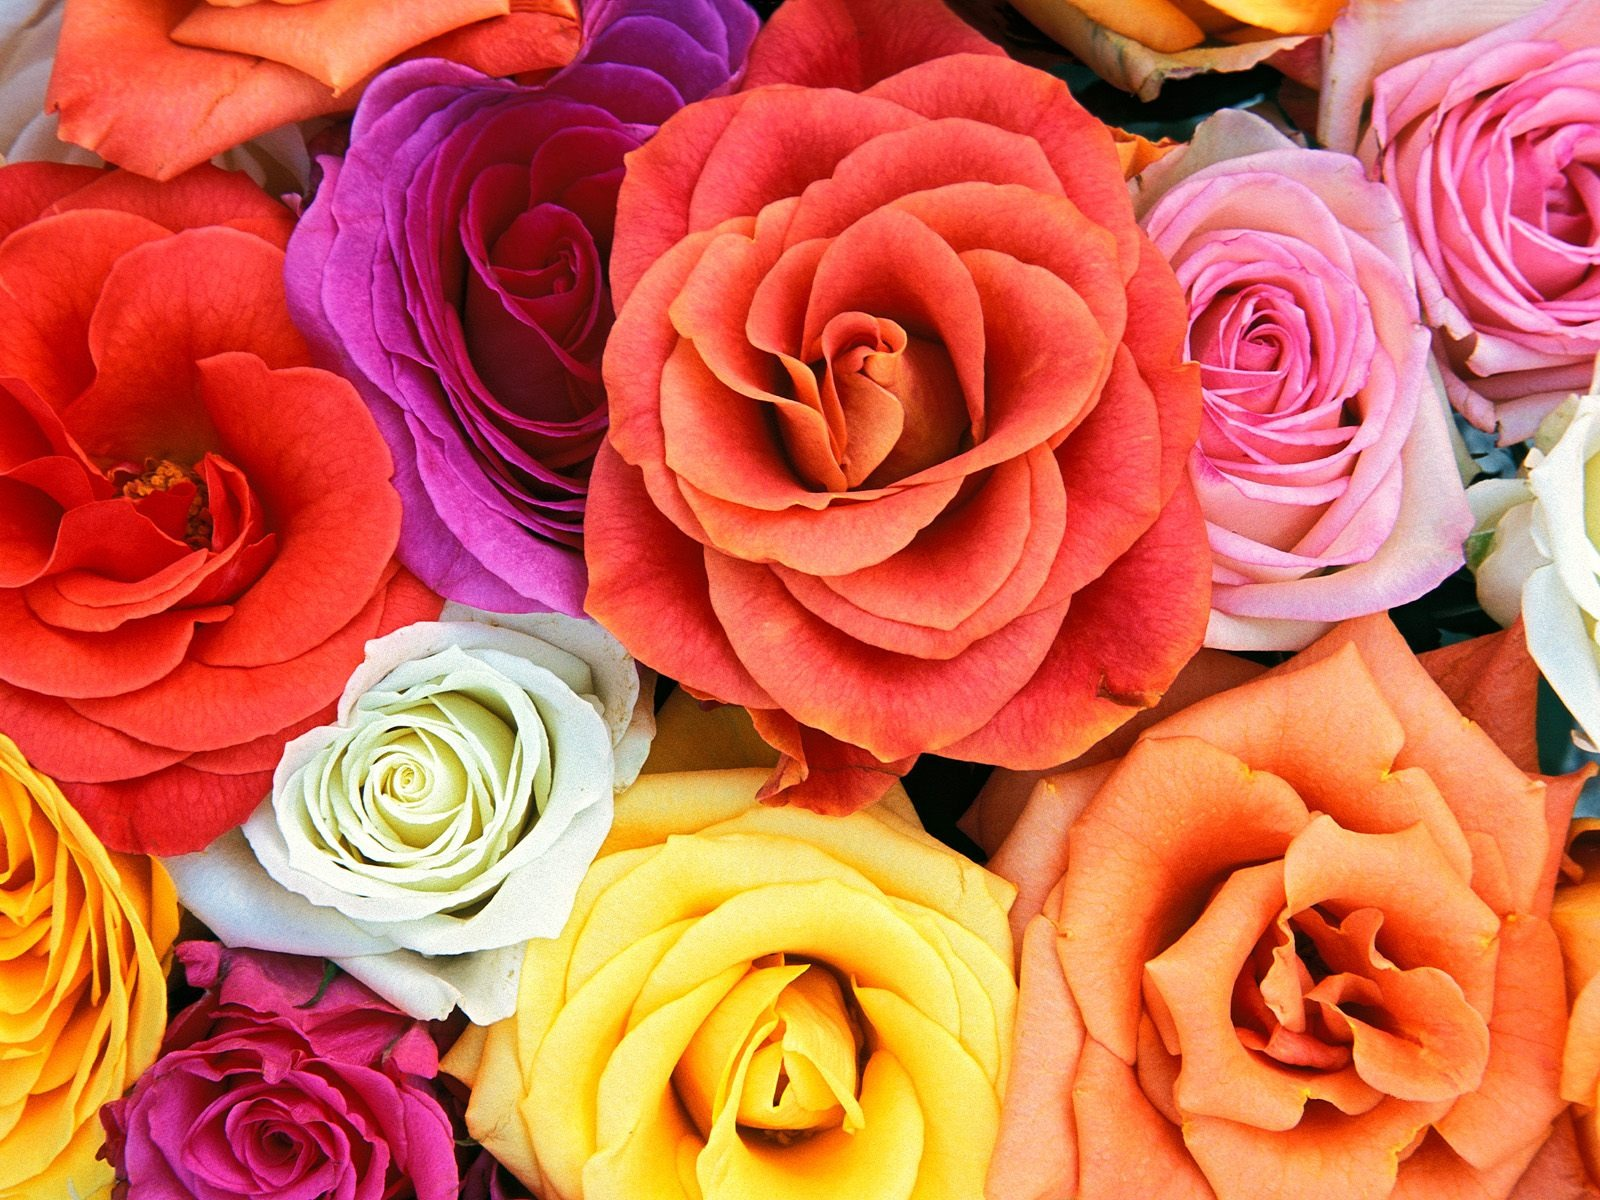 Love Blooms Roses Wallpaper Flowers Nature Wallpapers In Jpg Format